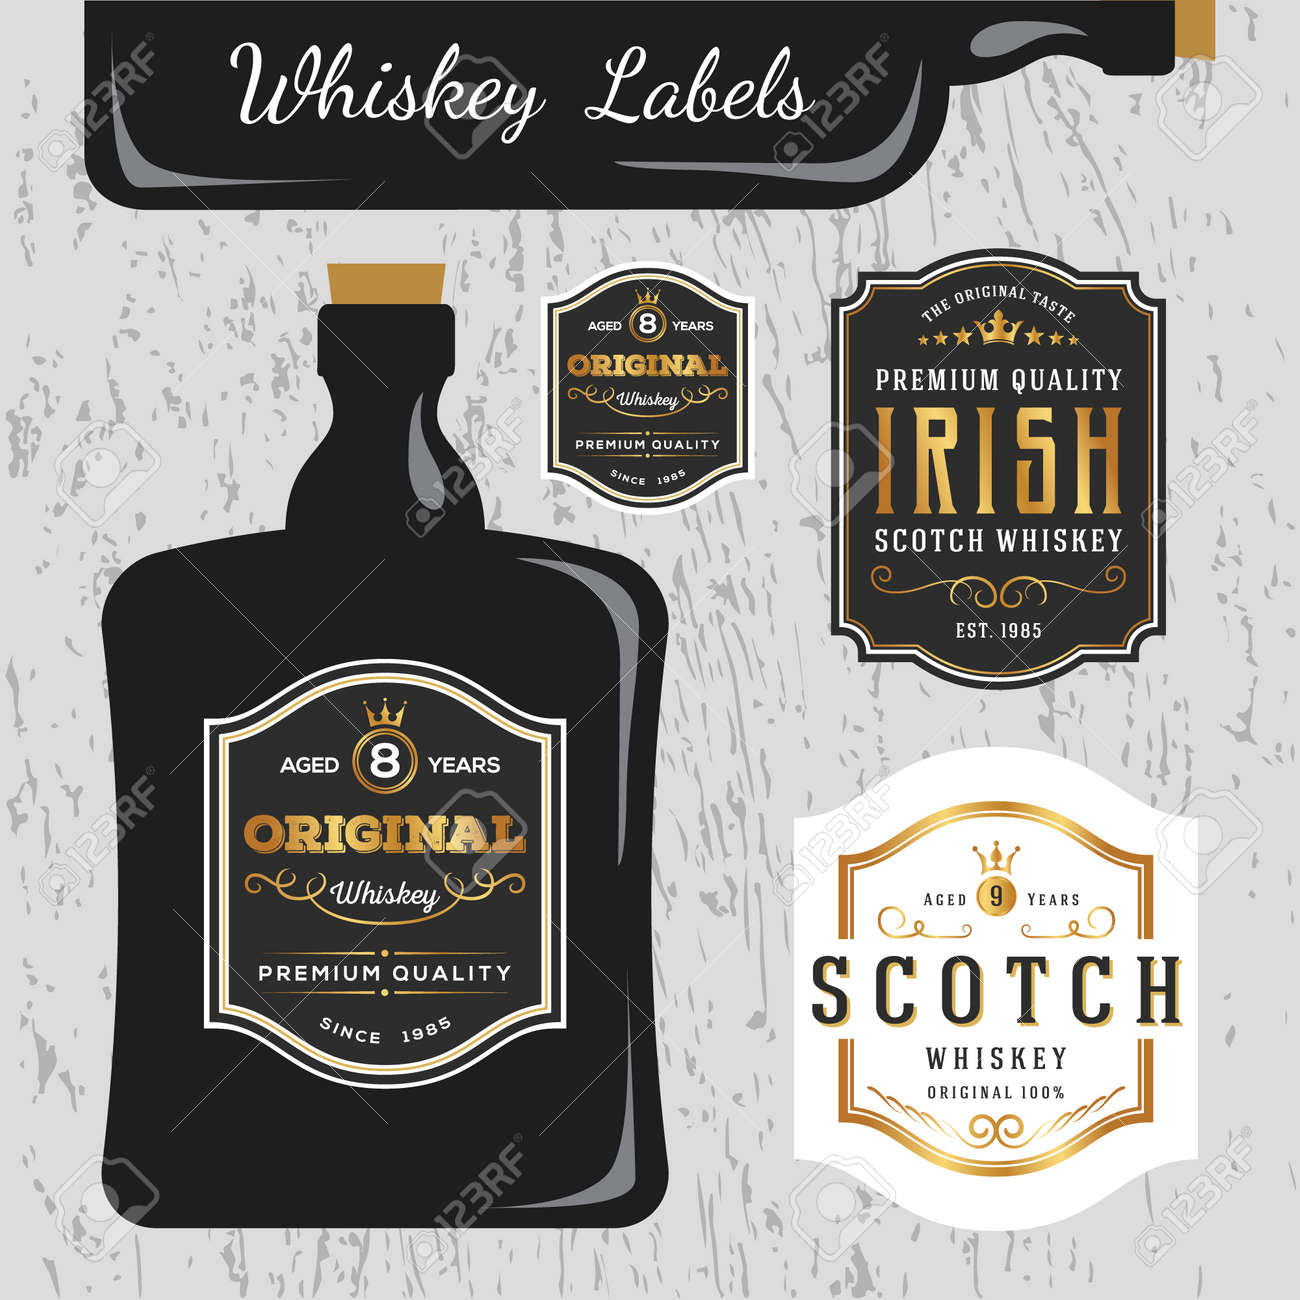 whiskey brands label design template resize able and free font